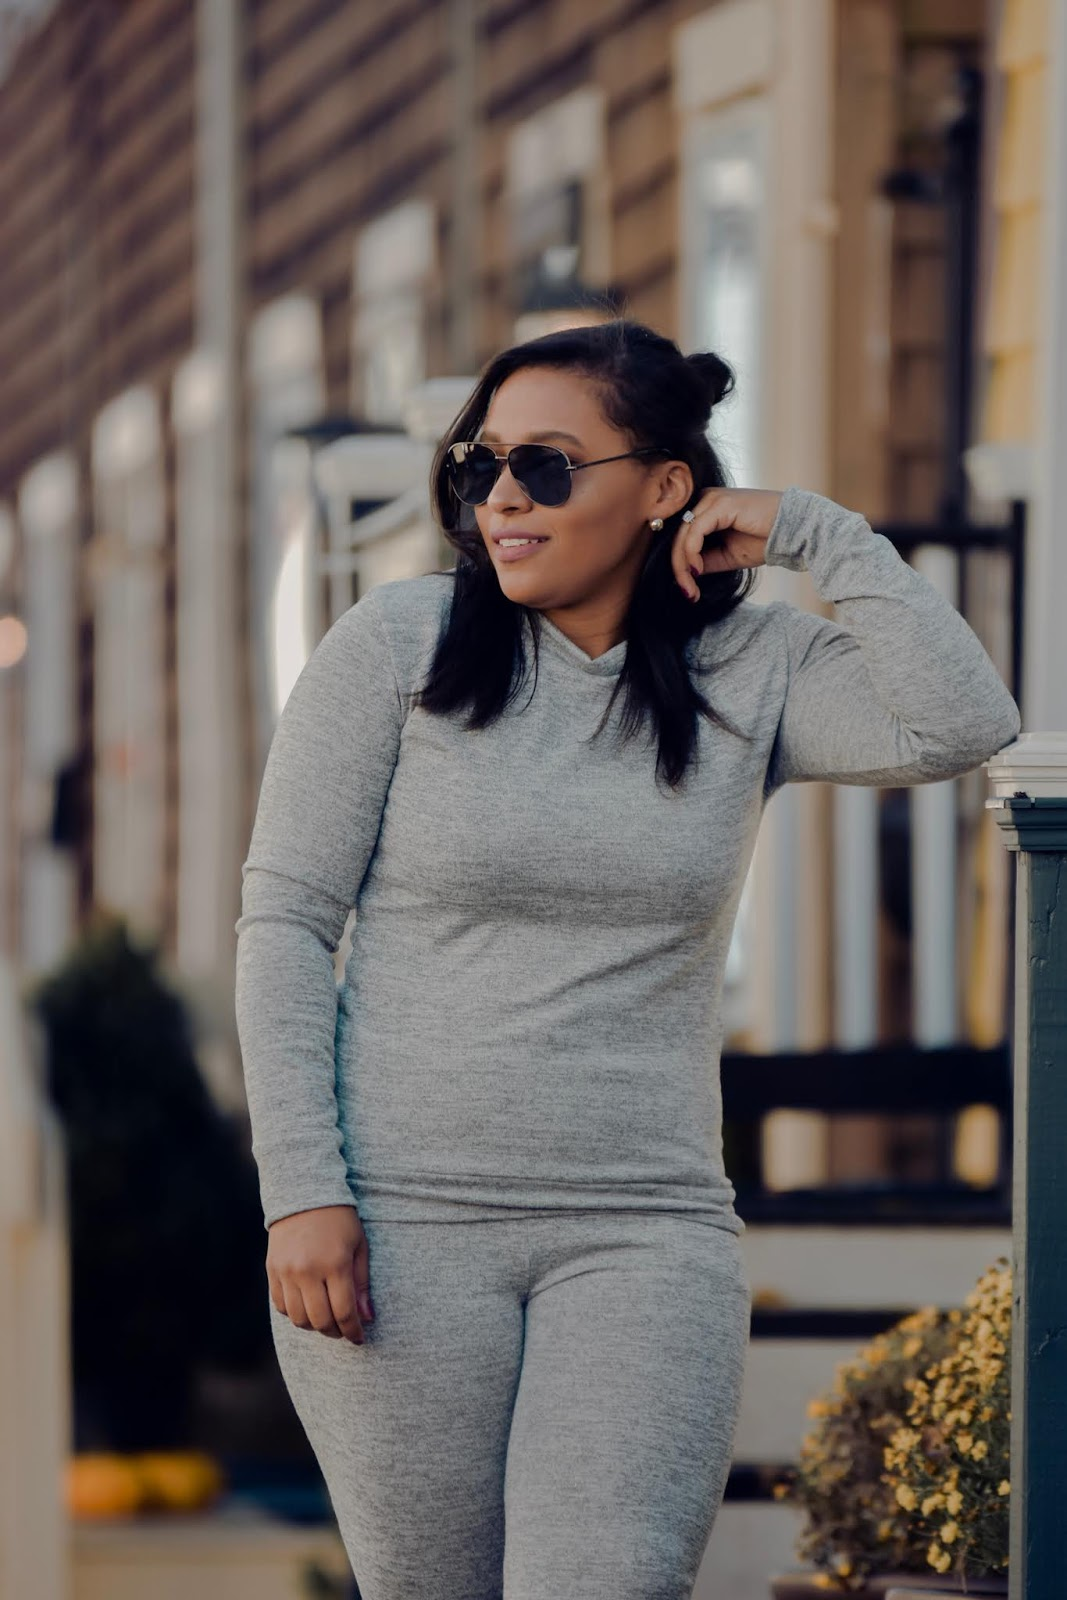 femme luxe, luxe gal, sweat suits, jogger suits, casual mom looks.